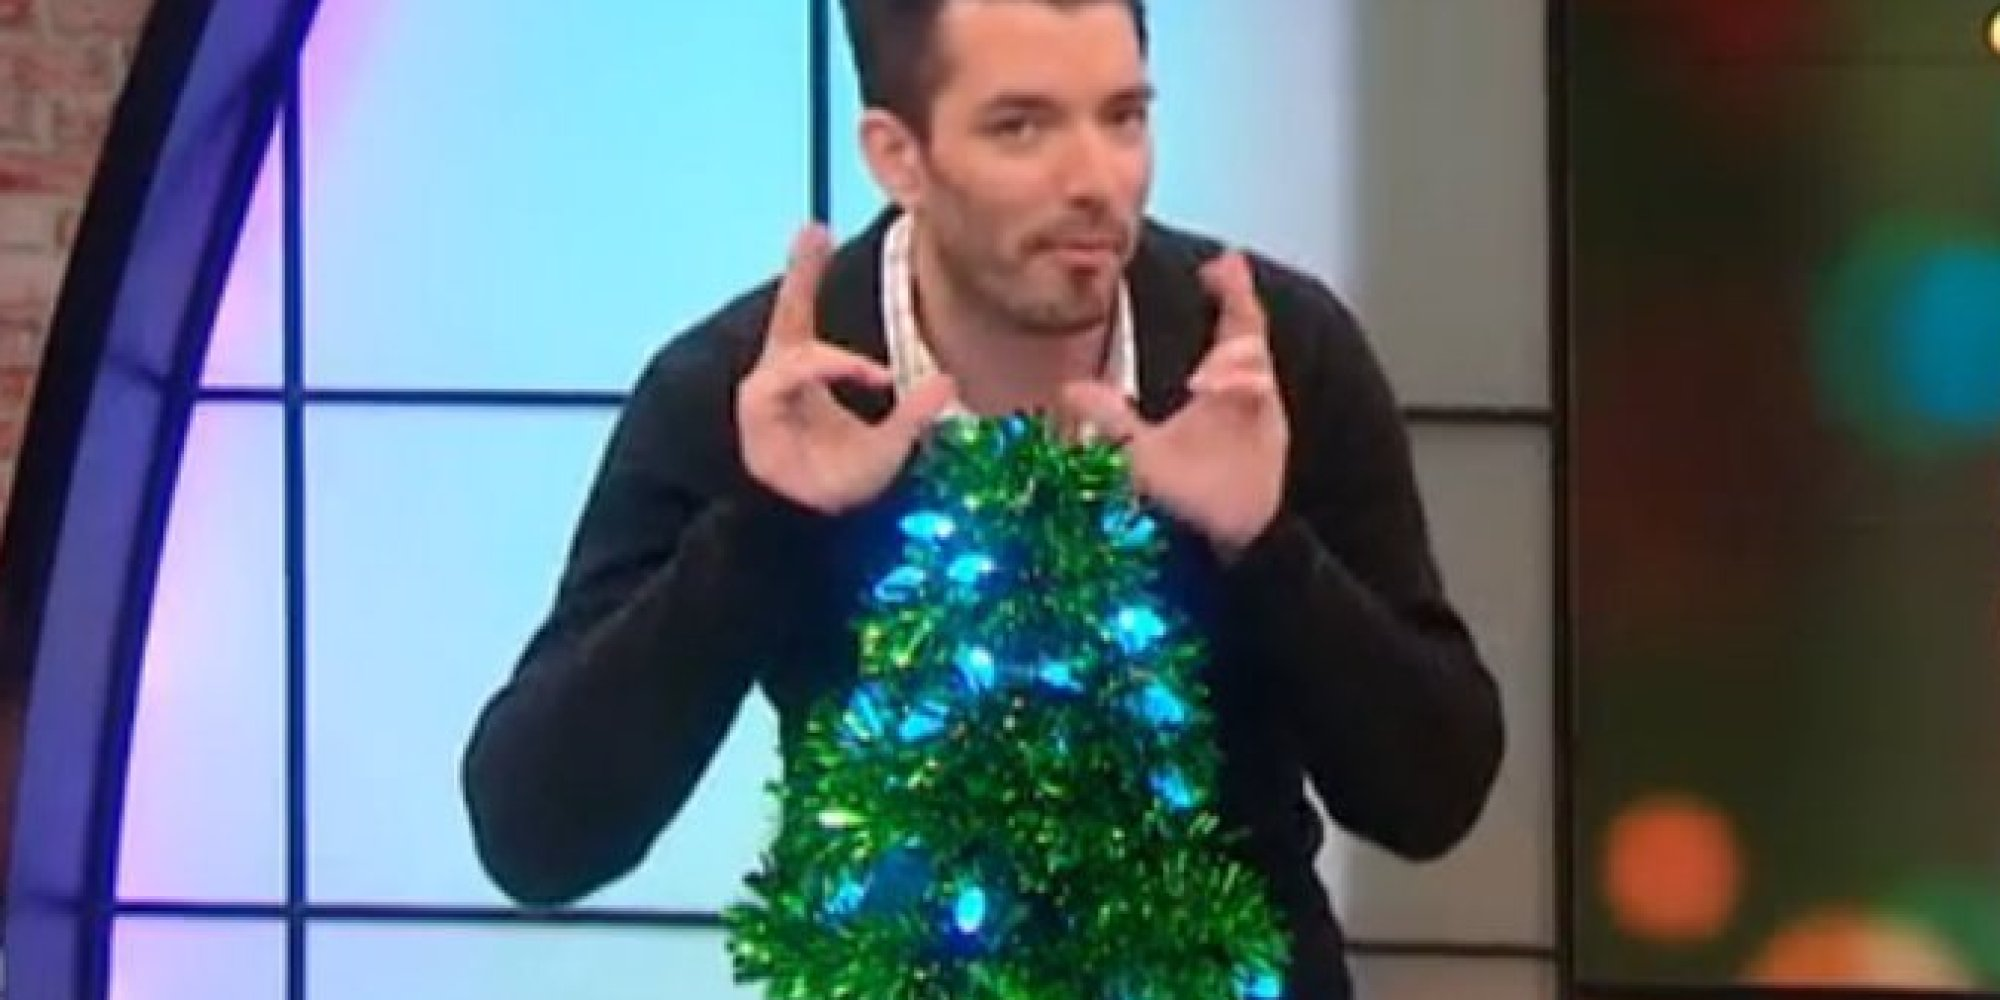 The perfect christmas tree is made from coat hangers